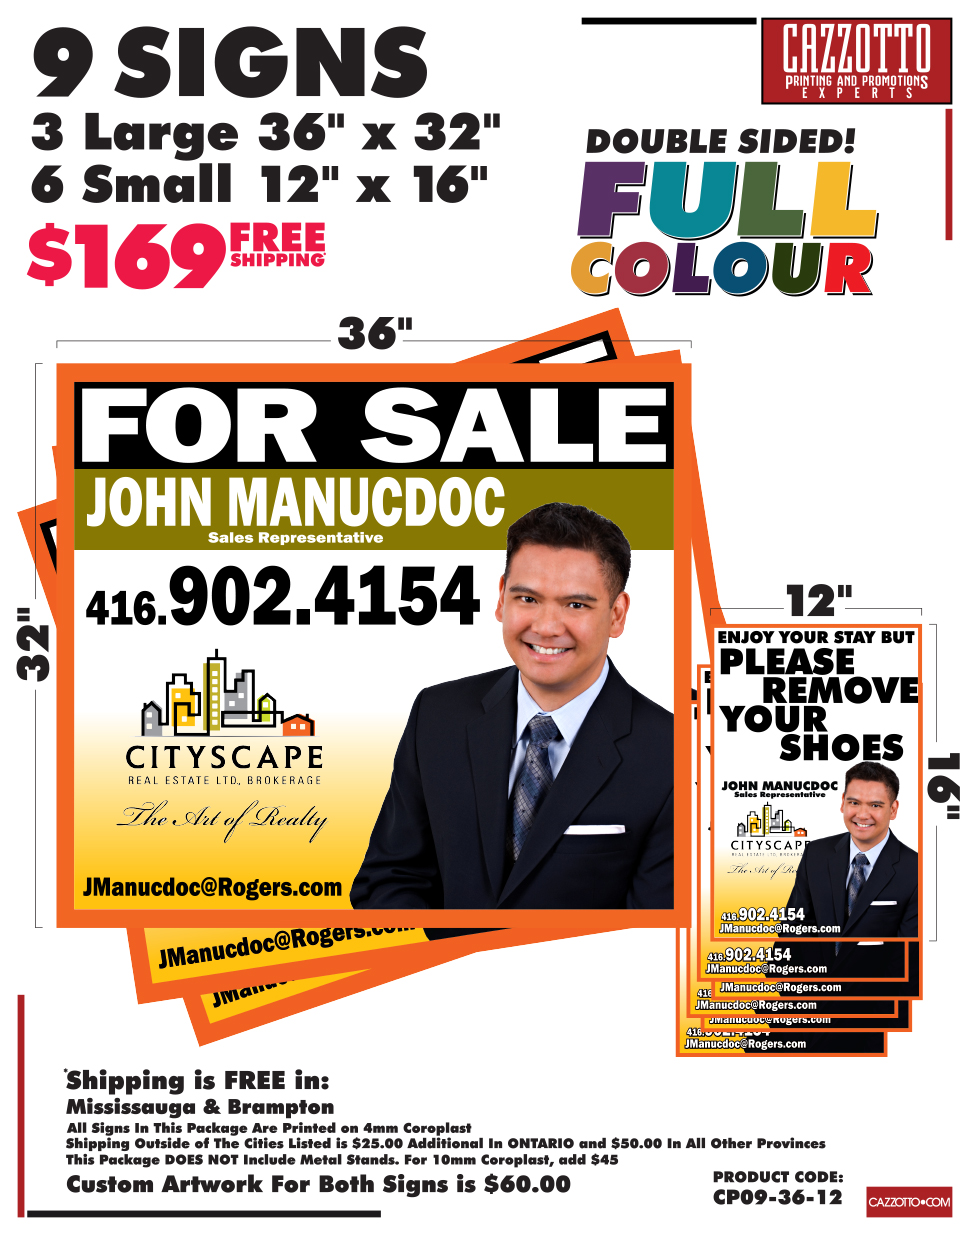 Real Estate Sign Printing In Mississauga - Custom Full Colour Real Estate Sign Printing at Cazzotto.com